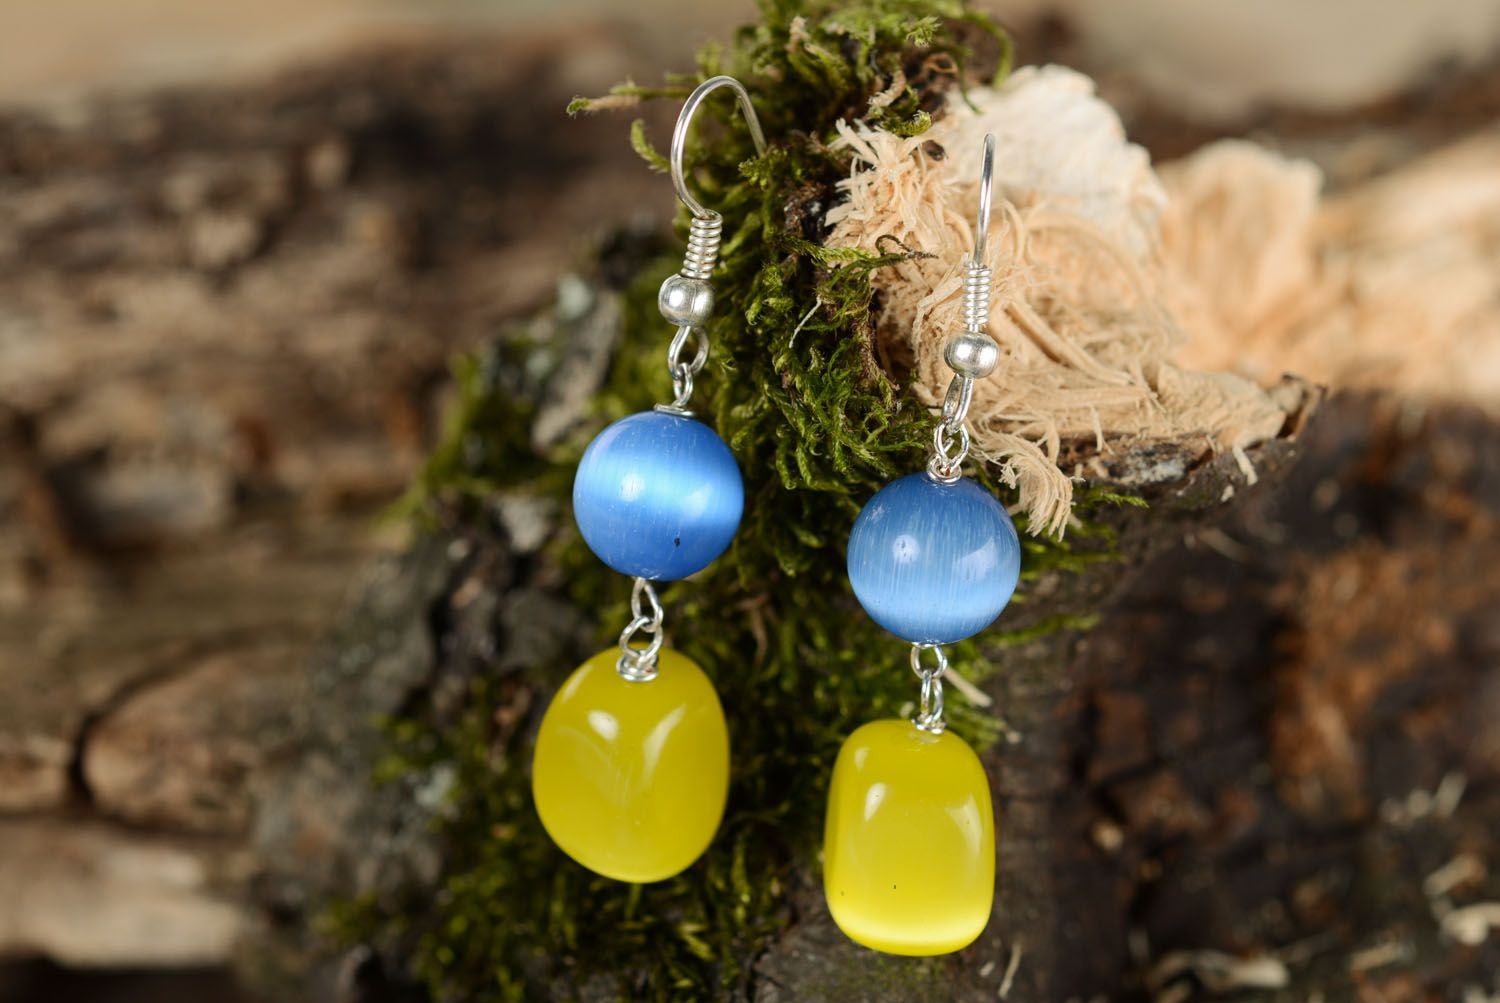 Earrings with cat's eye stone photo 1